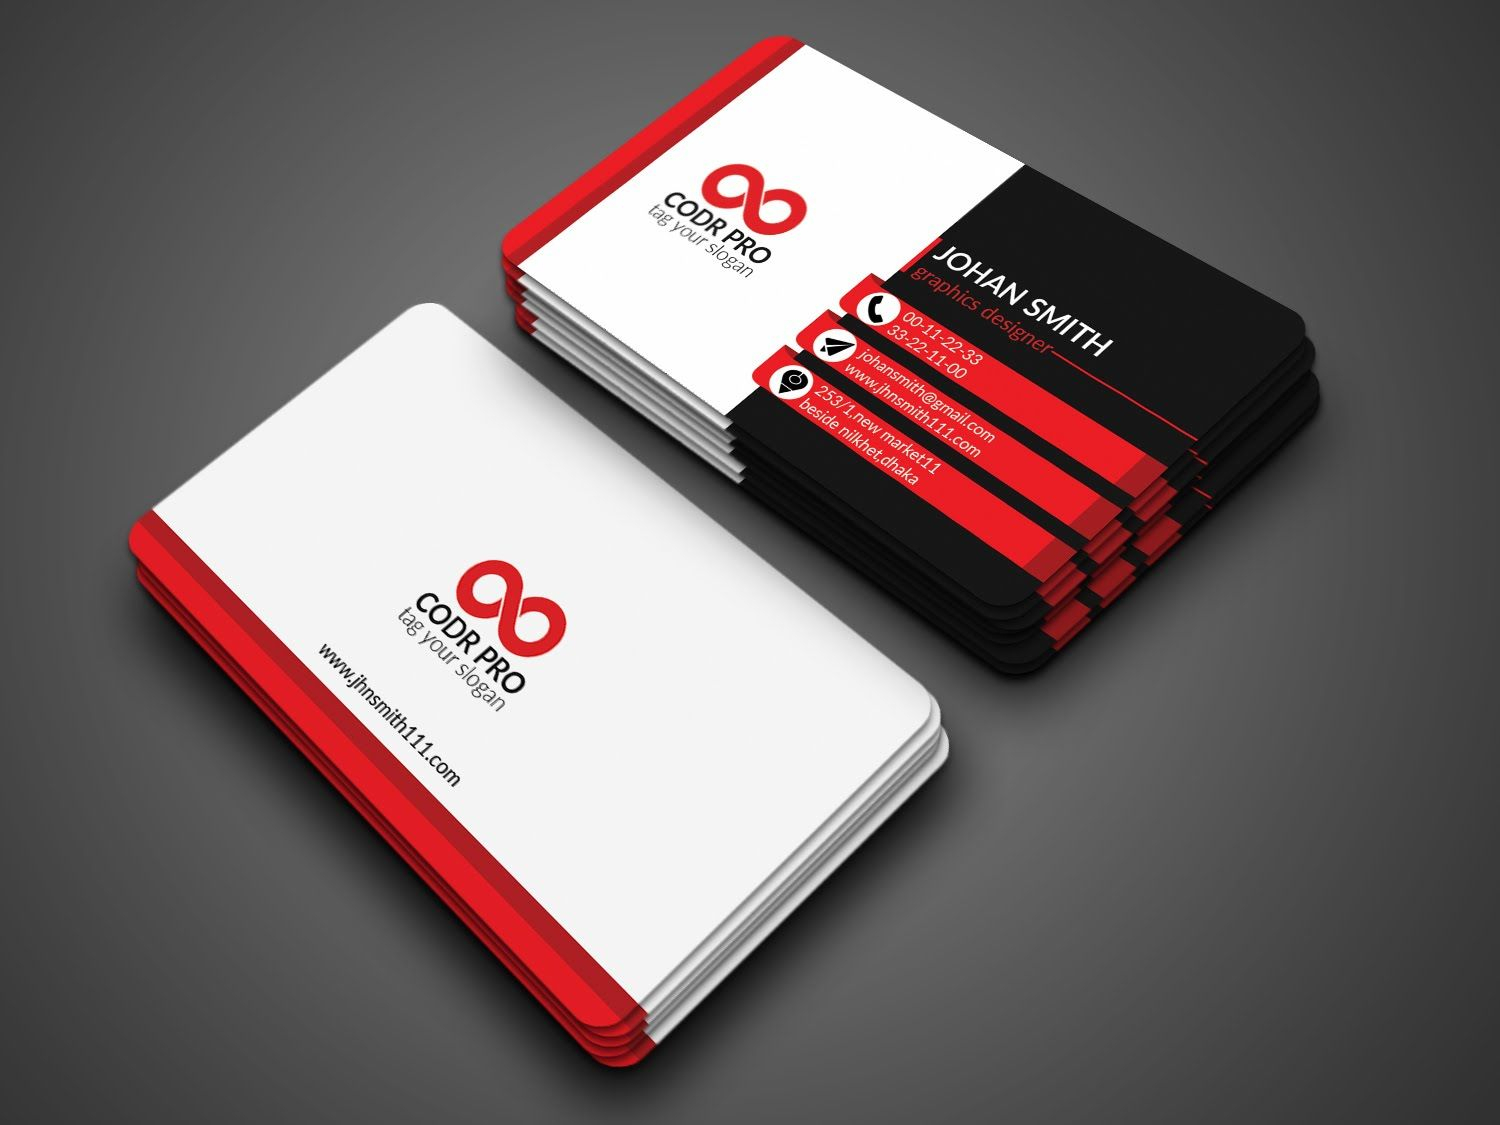 Professional Business Card Design In Photoshop Cs6 Tutorial With Regard To Photoshop Cs6 Business Card Template